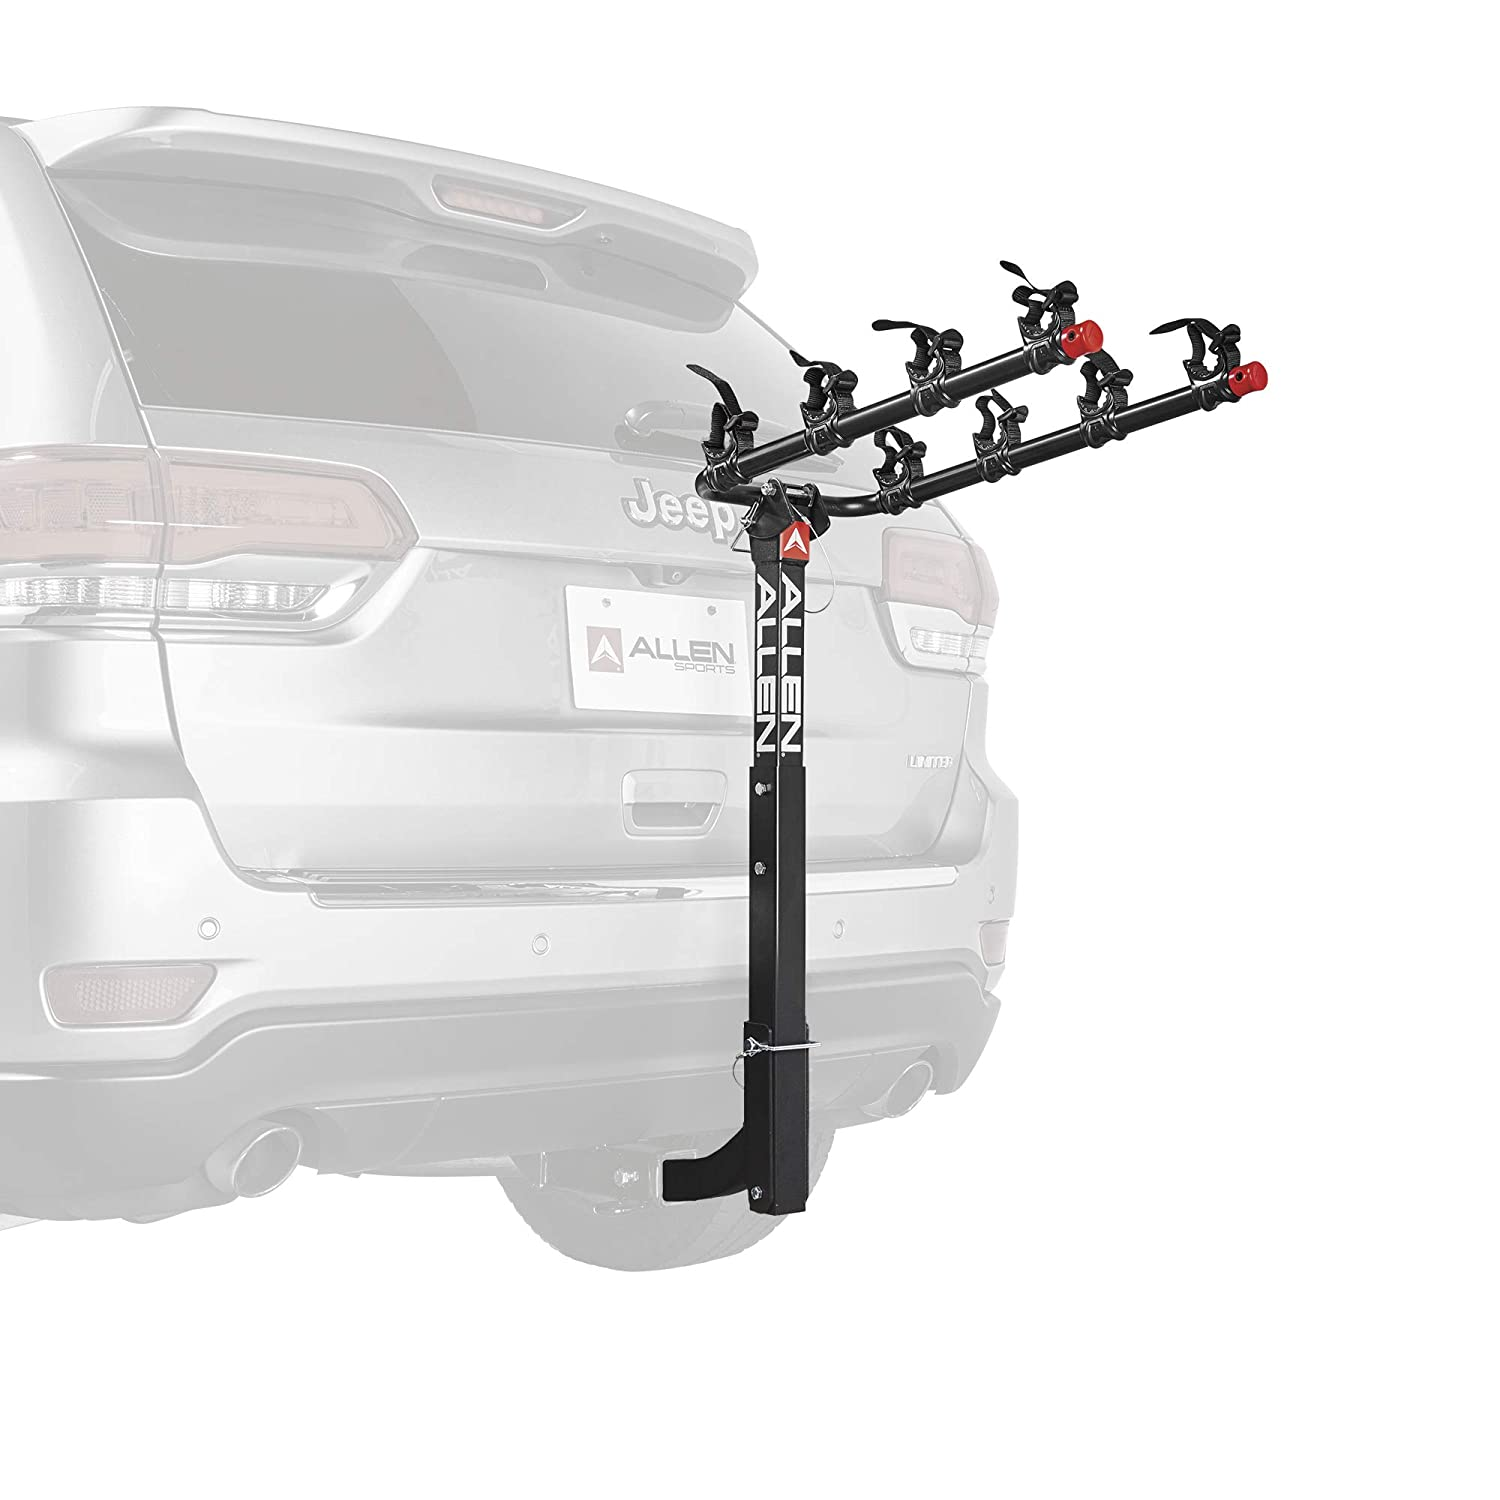 Vehicle Bicycle Rack Amazon.com : Allen Sports Deluxe 4-Bike Hitch Mount Rack with 2-Inch  Receiver : Automotive